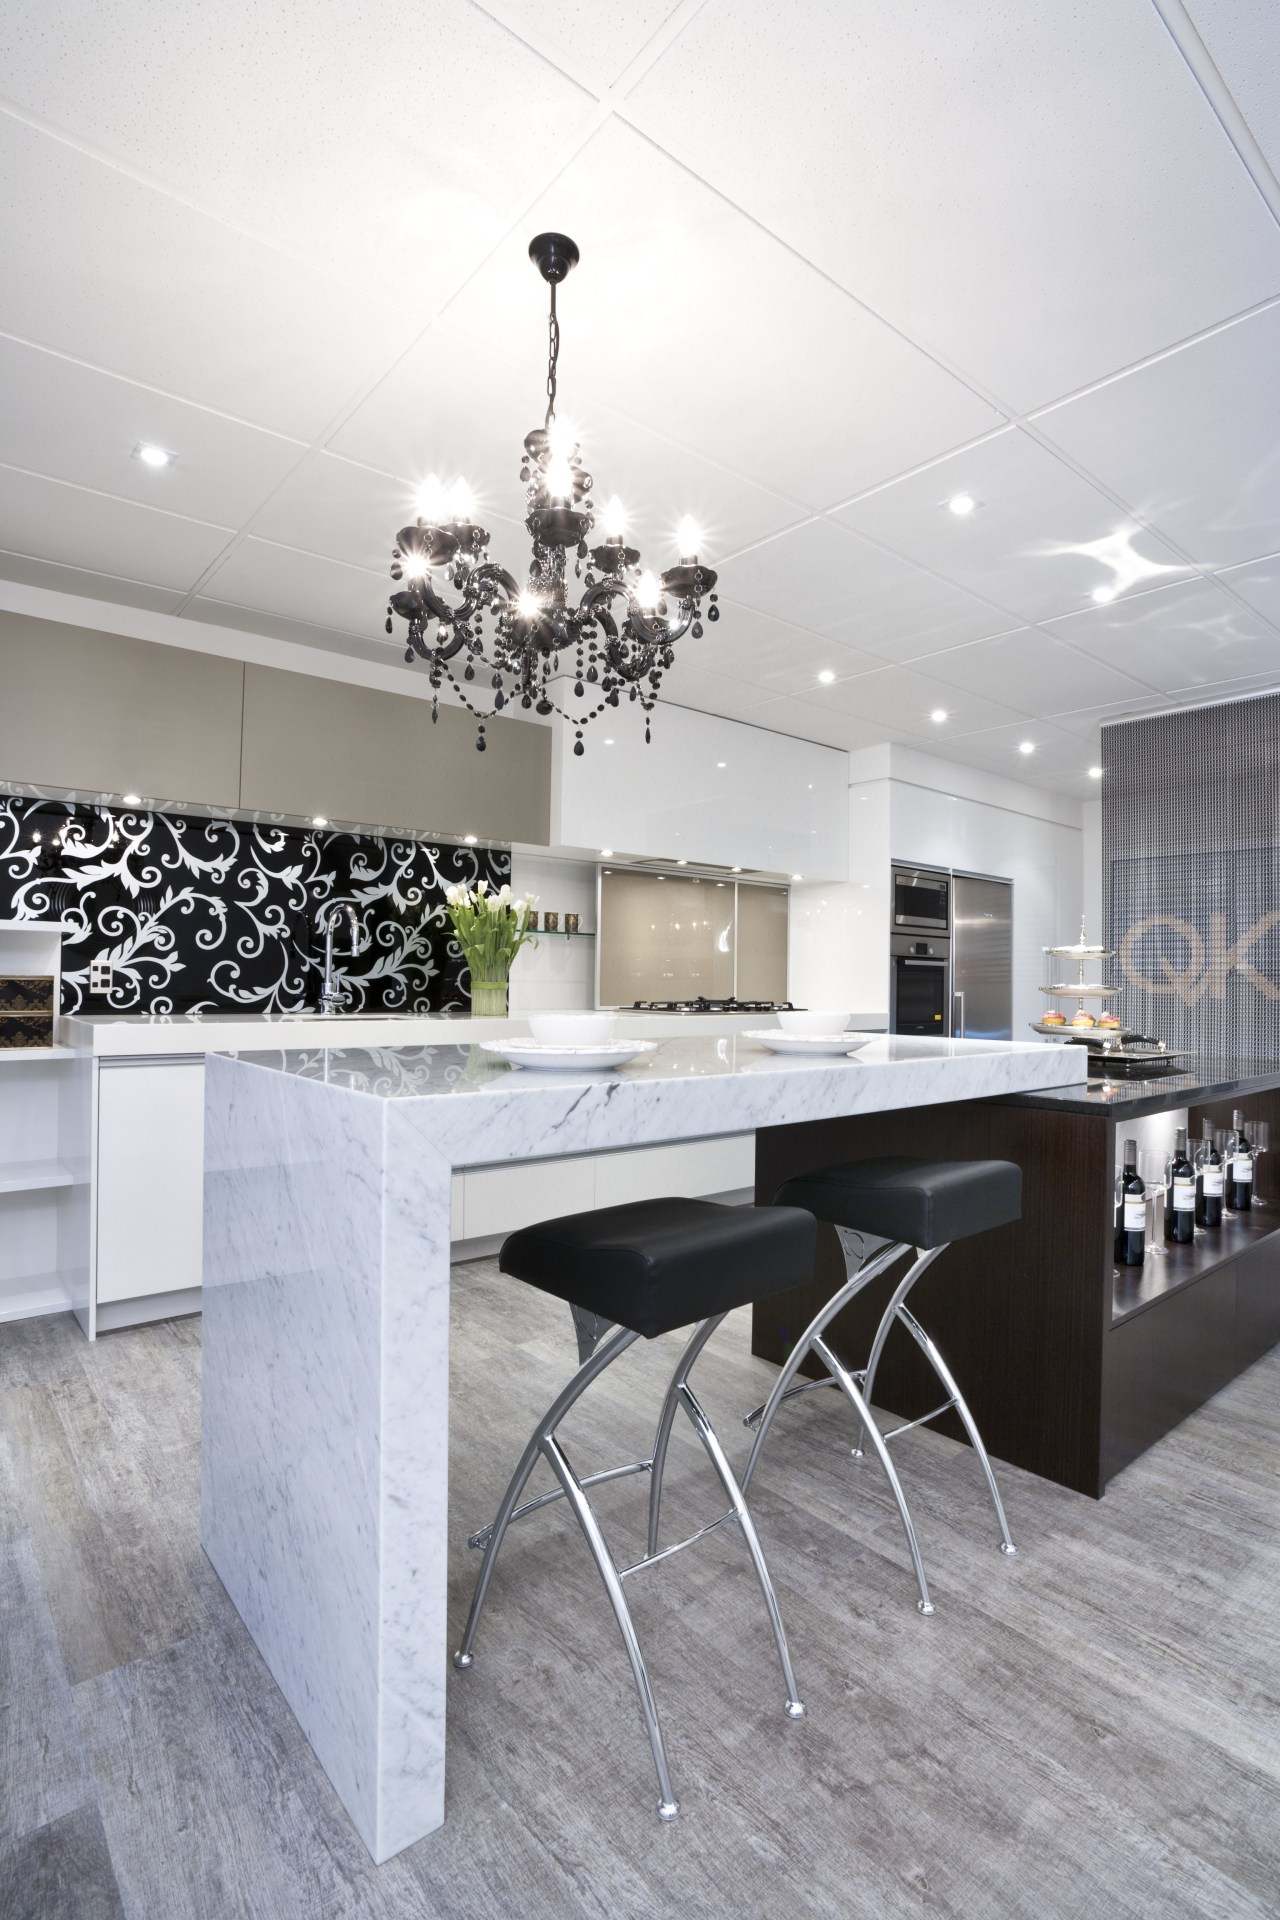 This kitchen by Yellowfox features an island with architecture, ceiling, chair, dining room, floor, flooring, furniture, interior design, kitchen, light fixture, product design, table, wall, gray, white